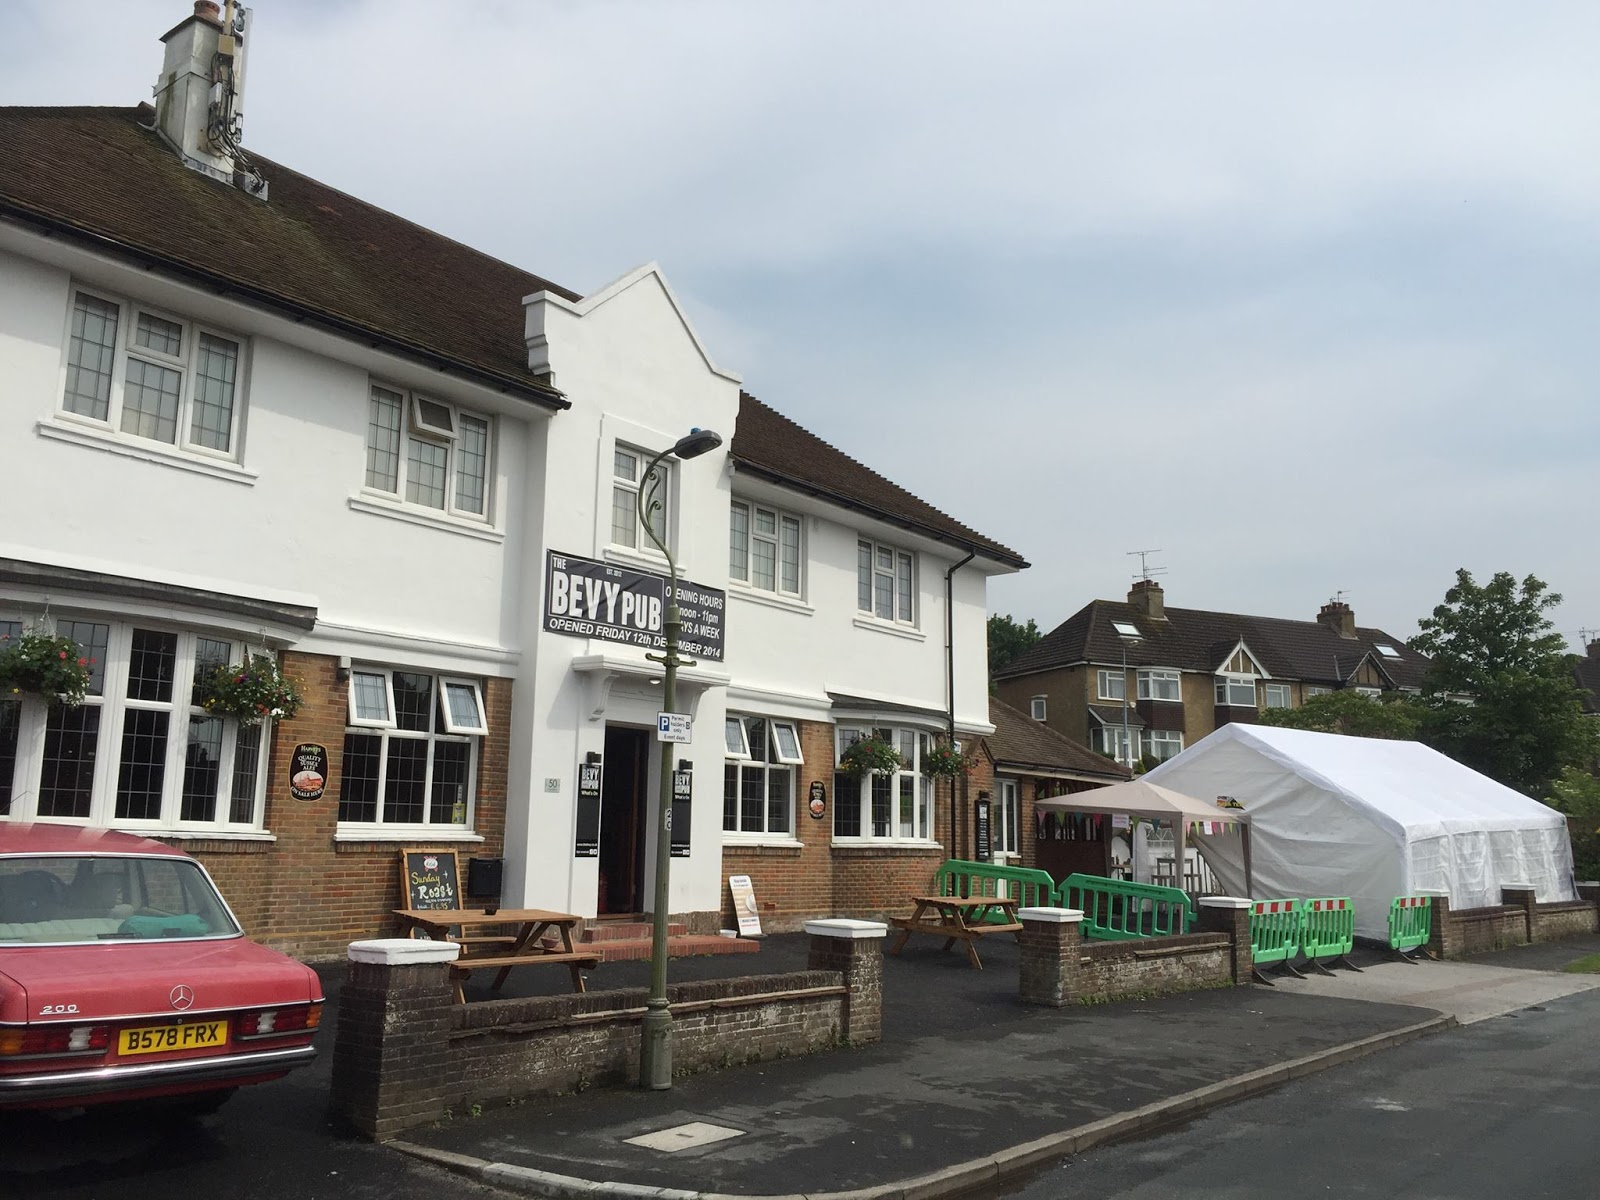 Brighton's first co-operative pub: The Bevvy